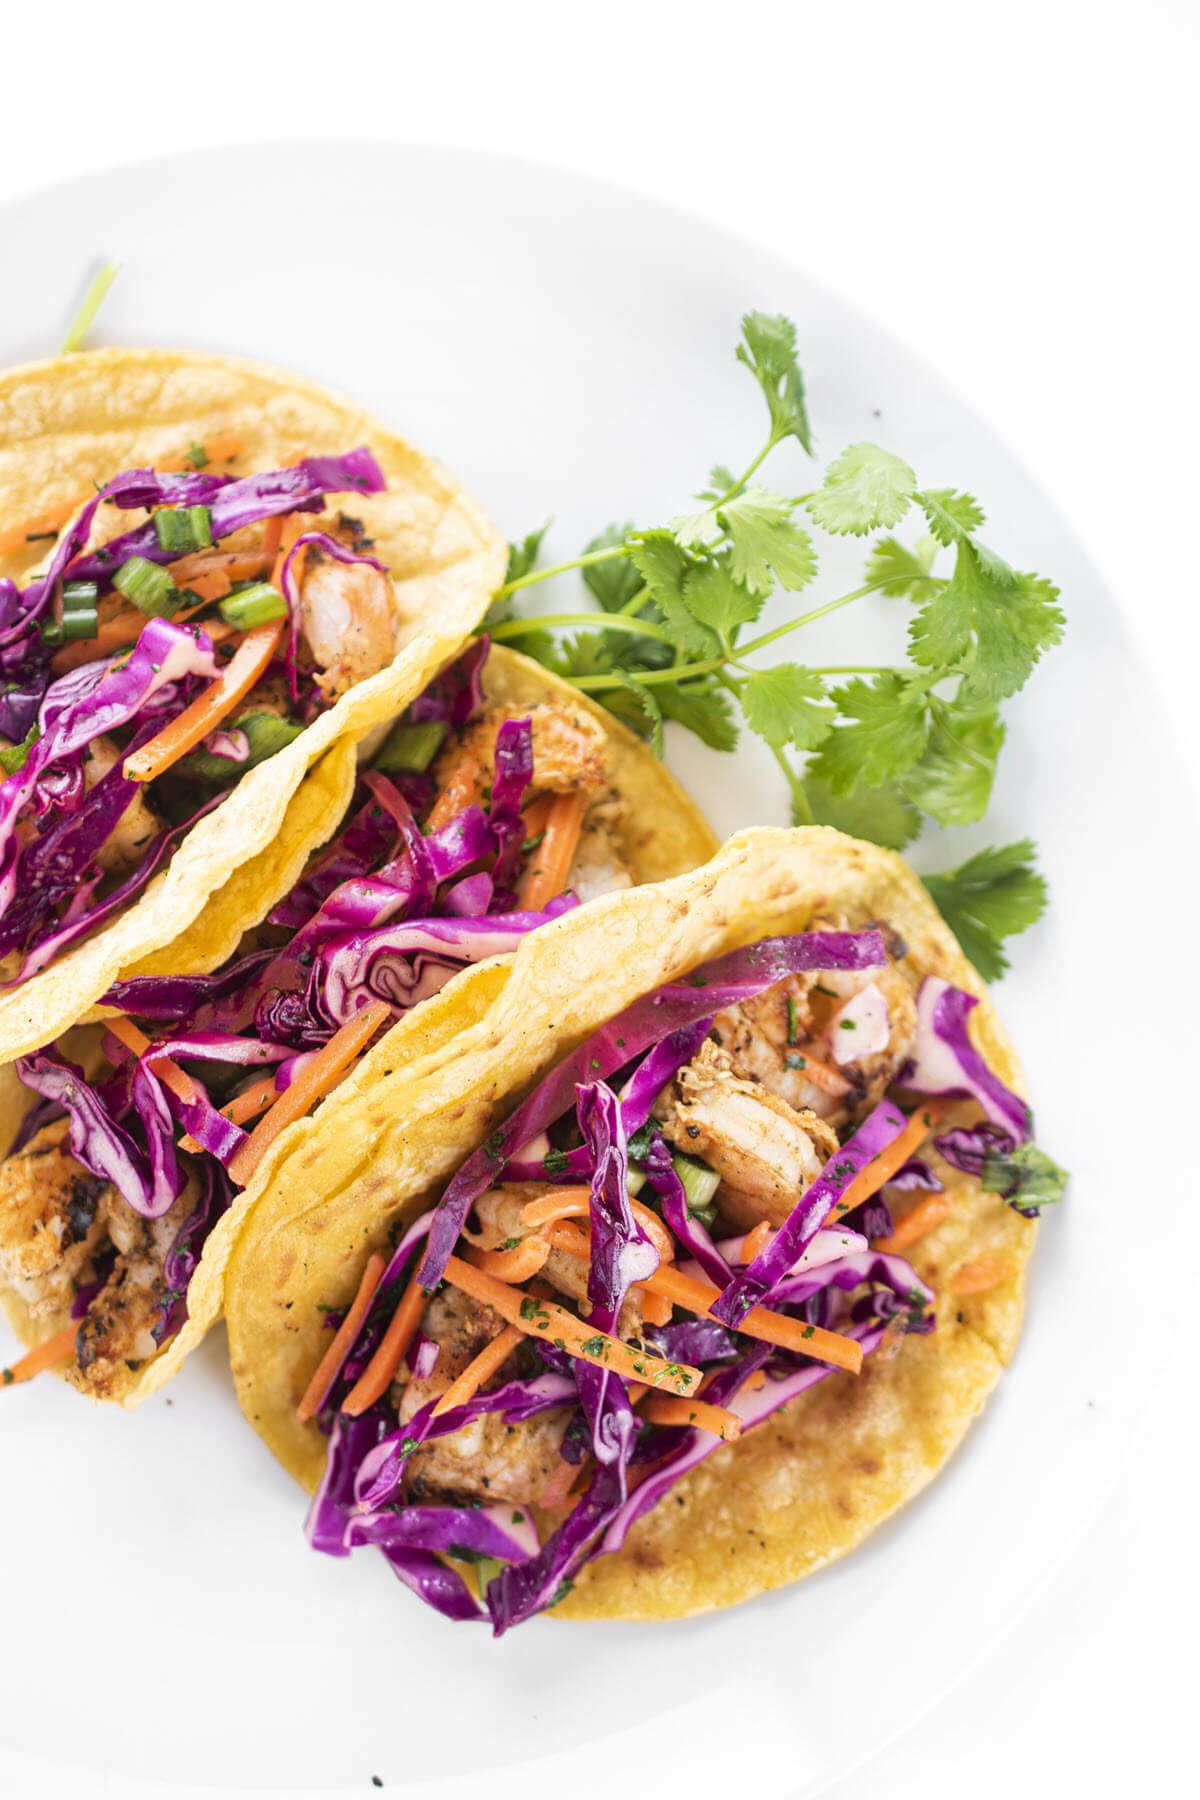 Grilled Shrimp Tacos with Slaw on a plate